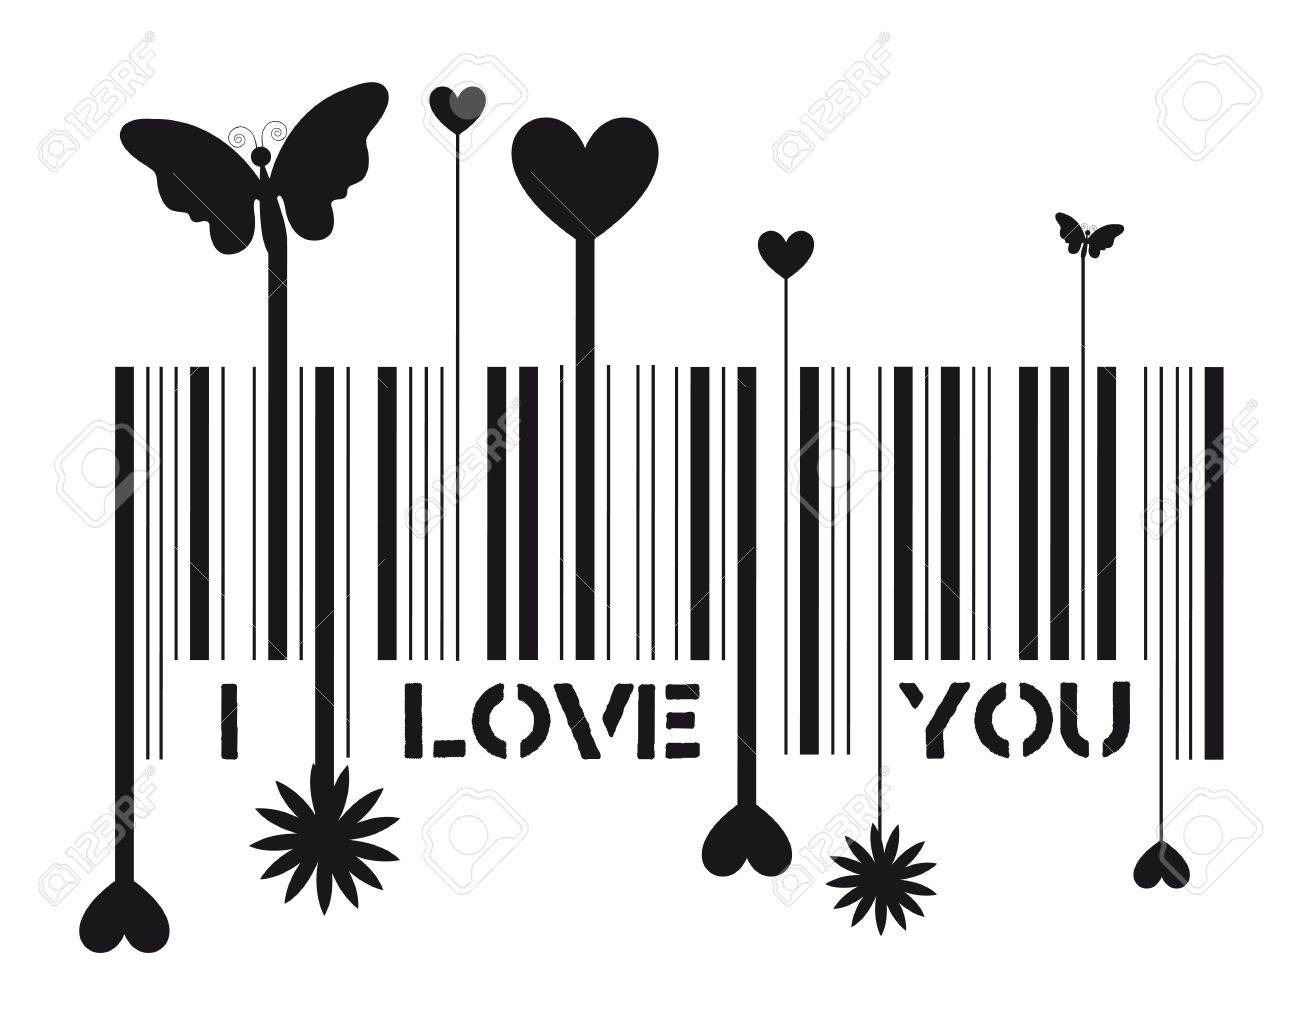 Bar code with i love you message, vector illustration Stock Vector - 12136722